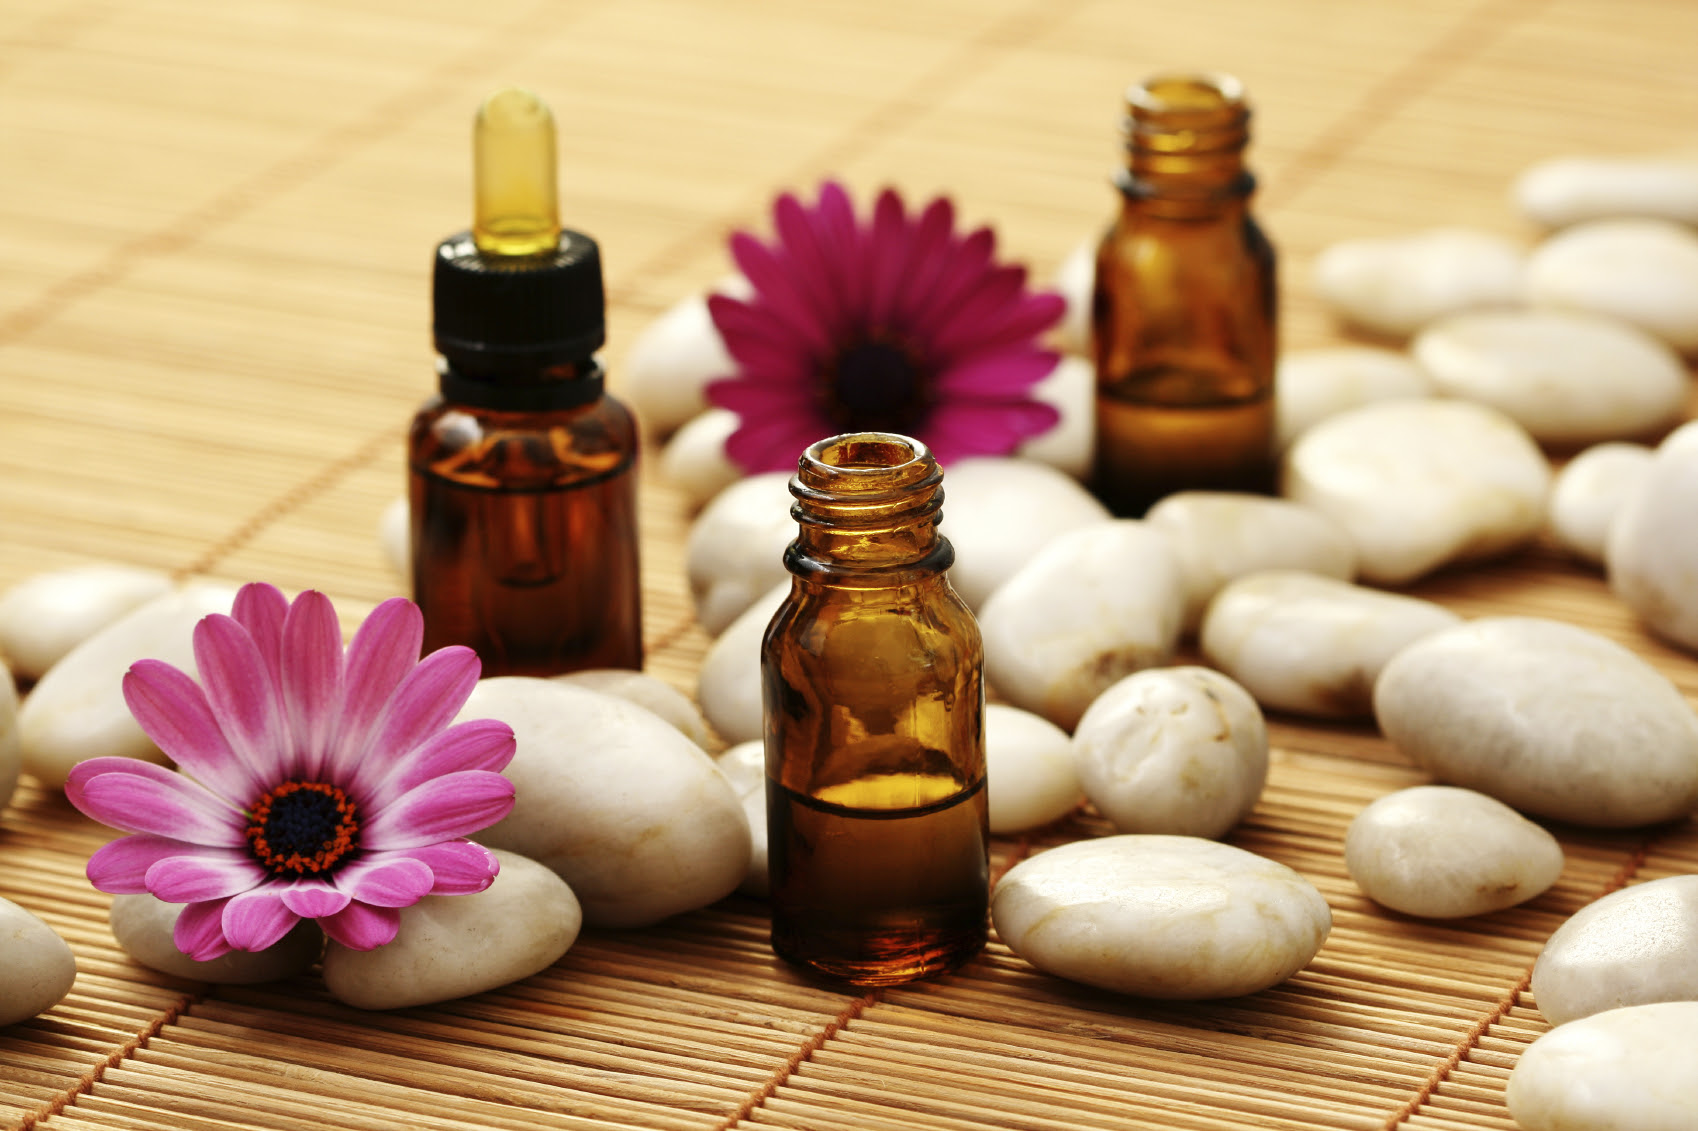 Aromatherapy for Your Home   My Decorative